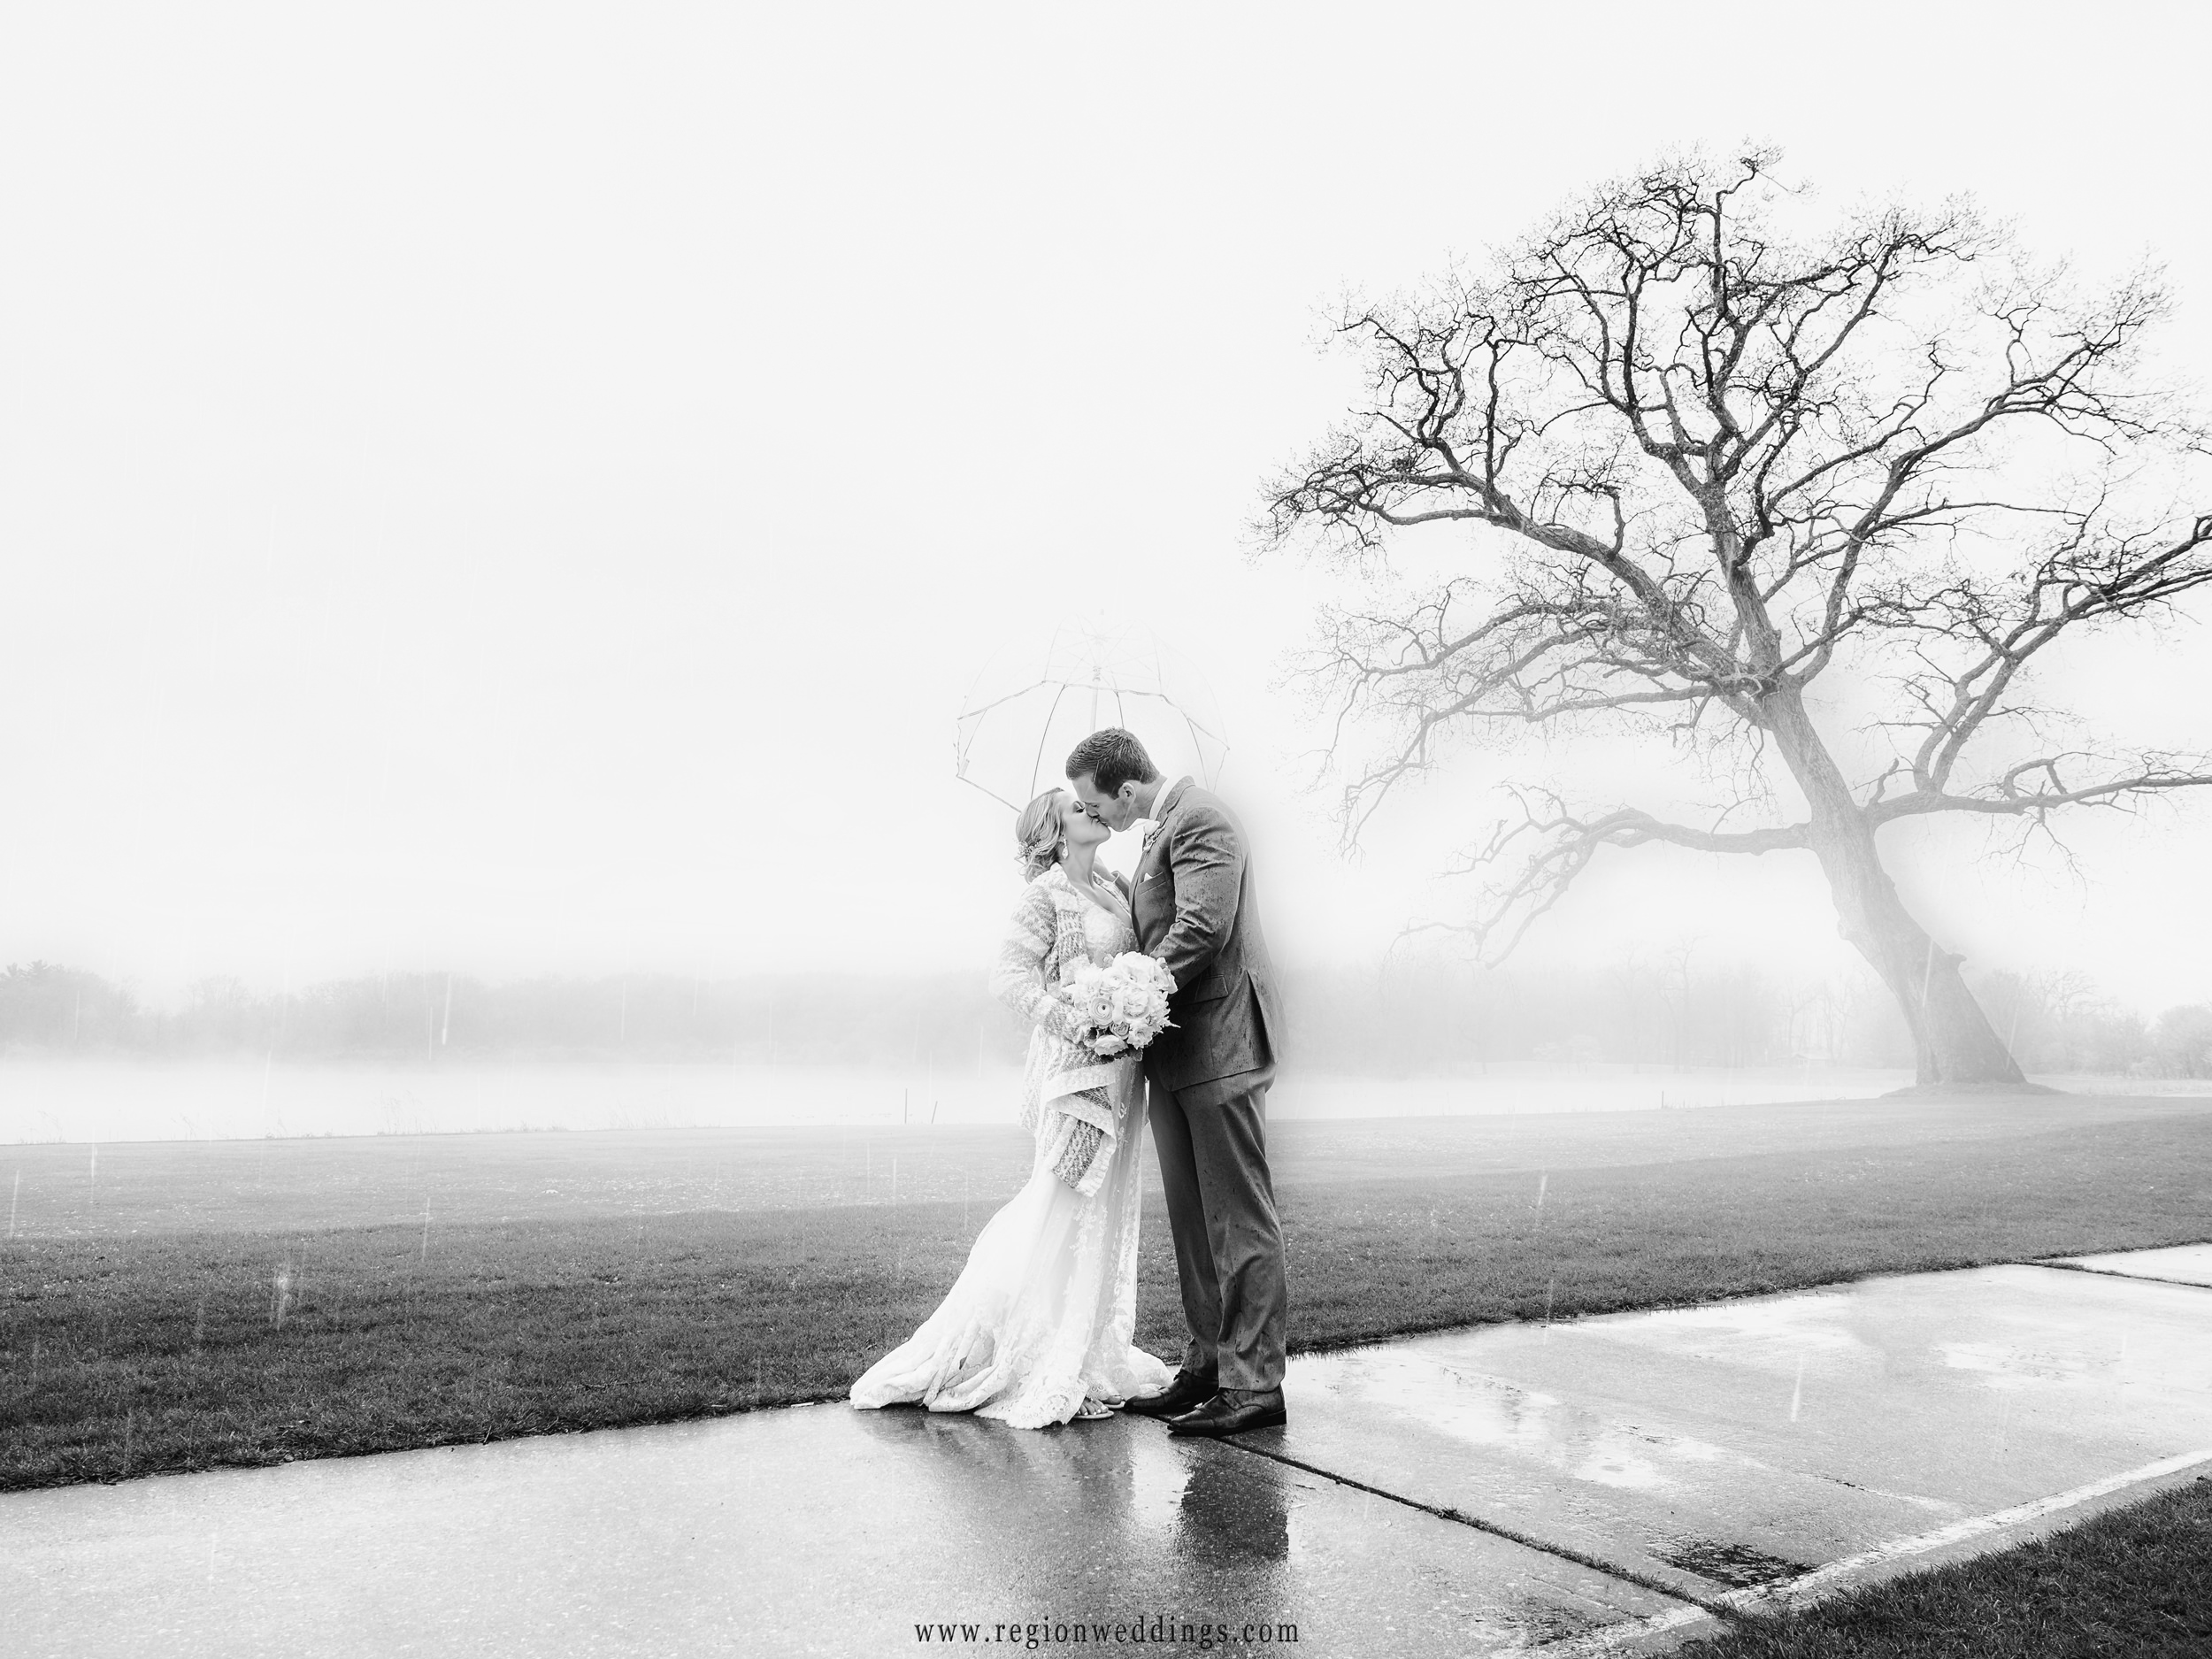 Bride and groom kiss as rain and sleet falls upon them and fog rises over the lake.